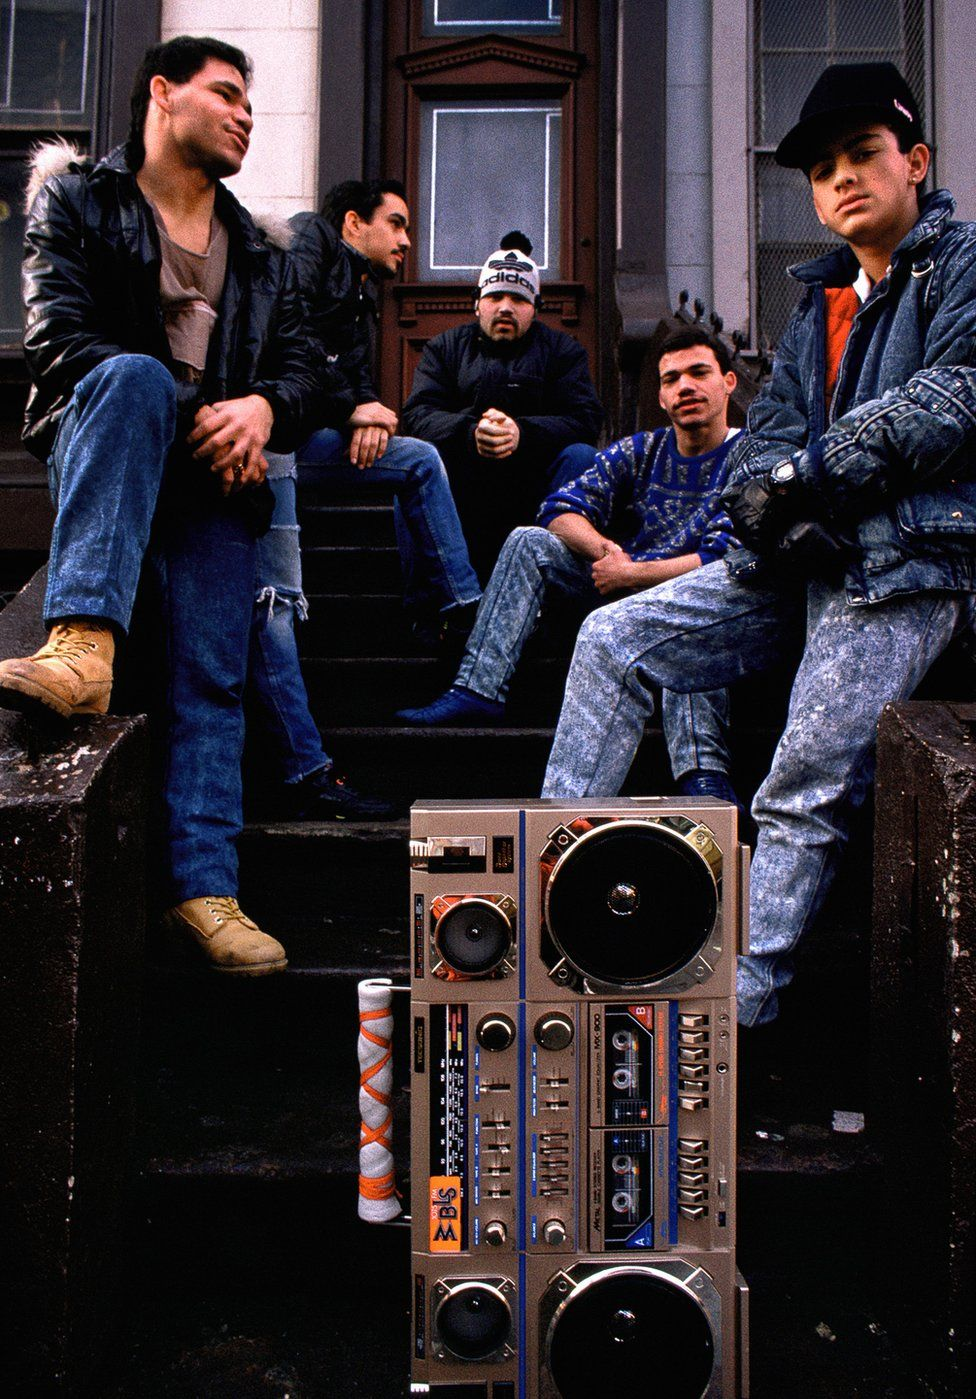 A group on the stoop